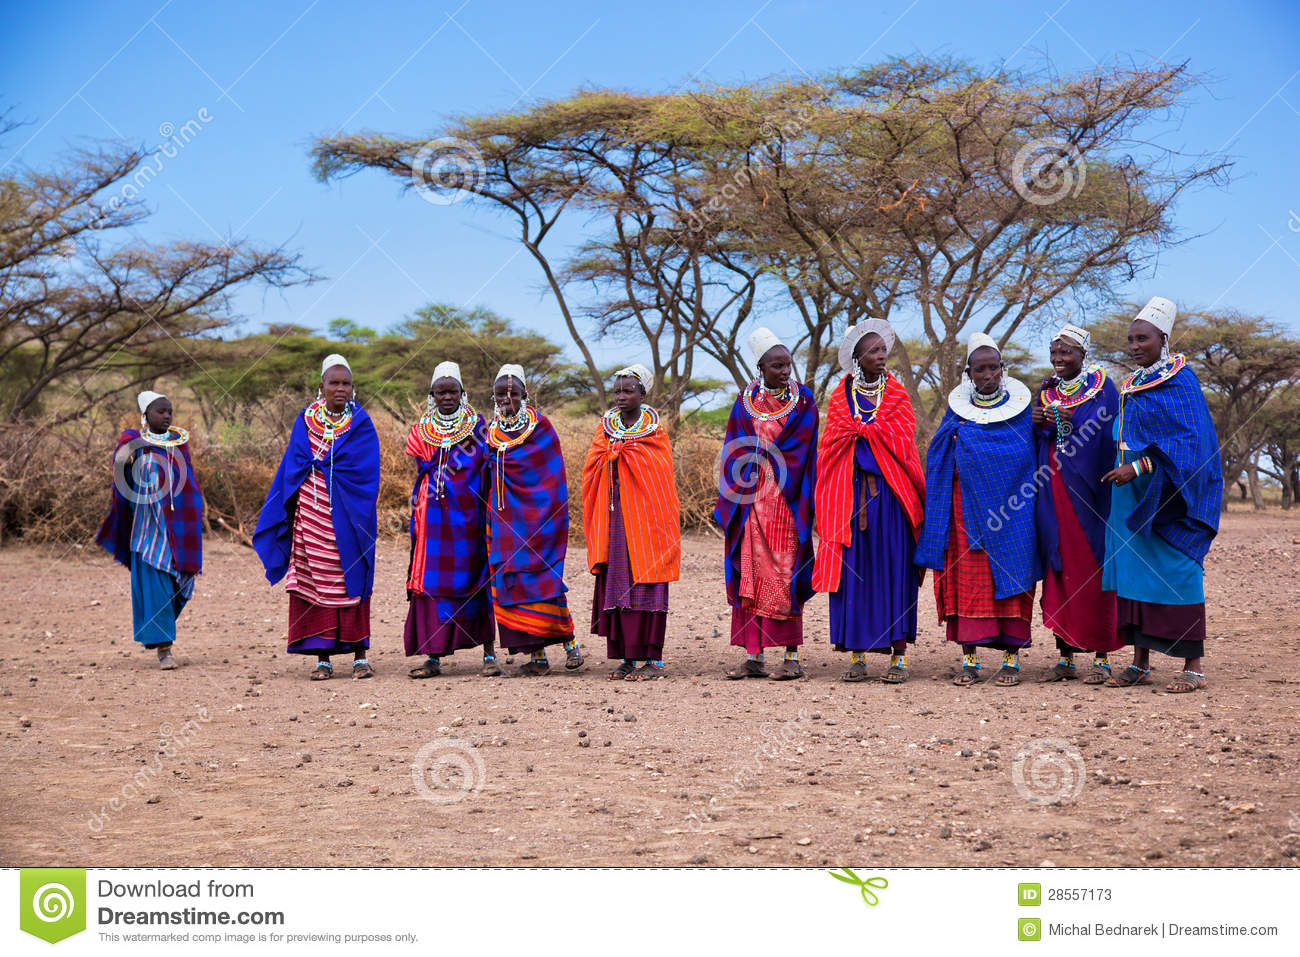 maasai-women-their-village-tanzania-africa-28557173 This Old House Plans En on traditional house plans, old house blueprints and plans, country house plans, old world courtyard home plans, this old house classics,